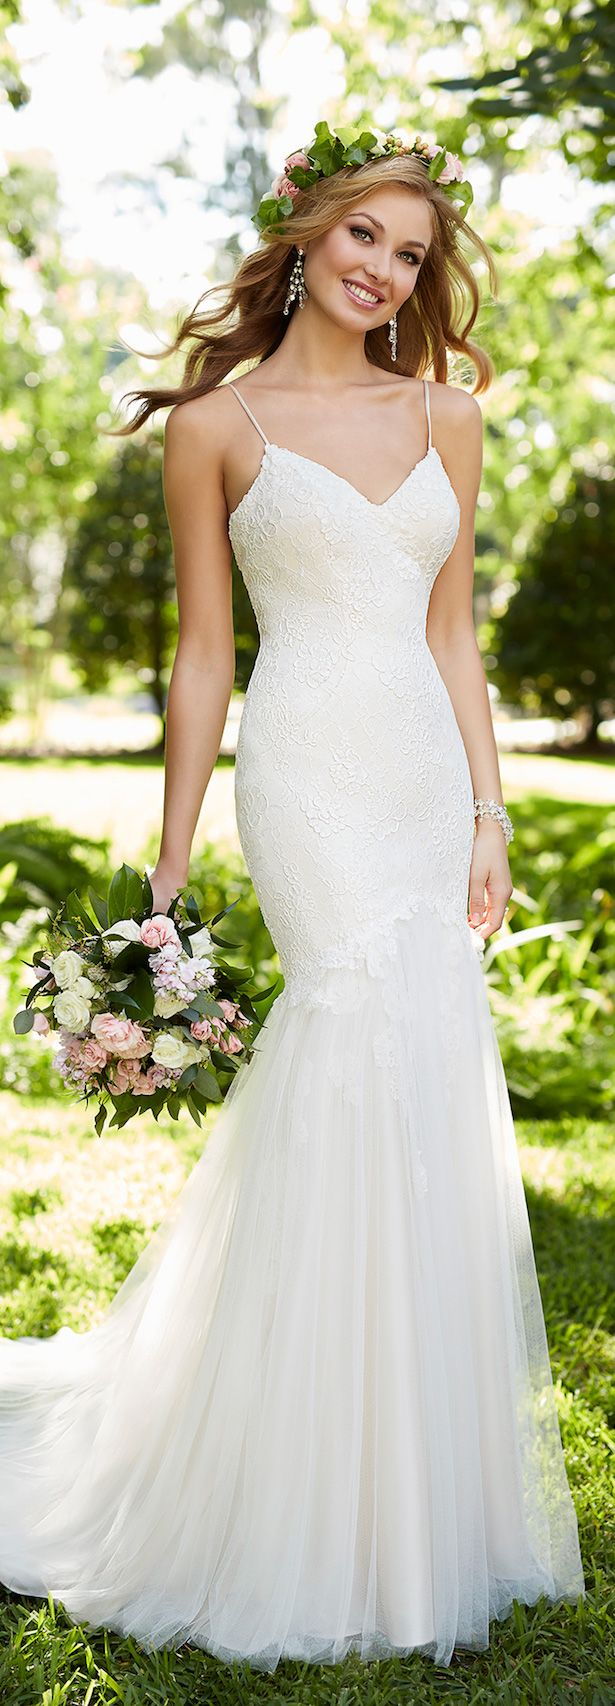 Simple wedding dresses online uk newspapers